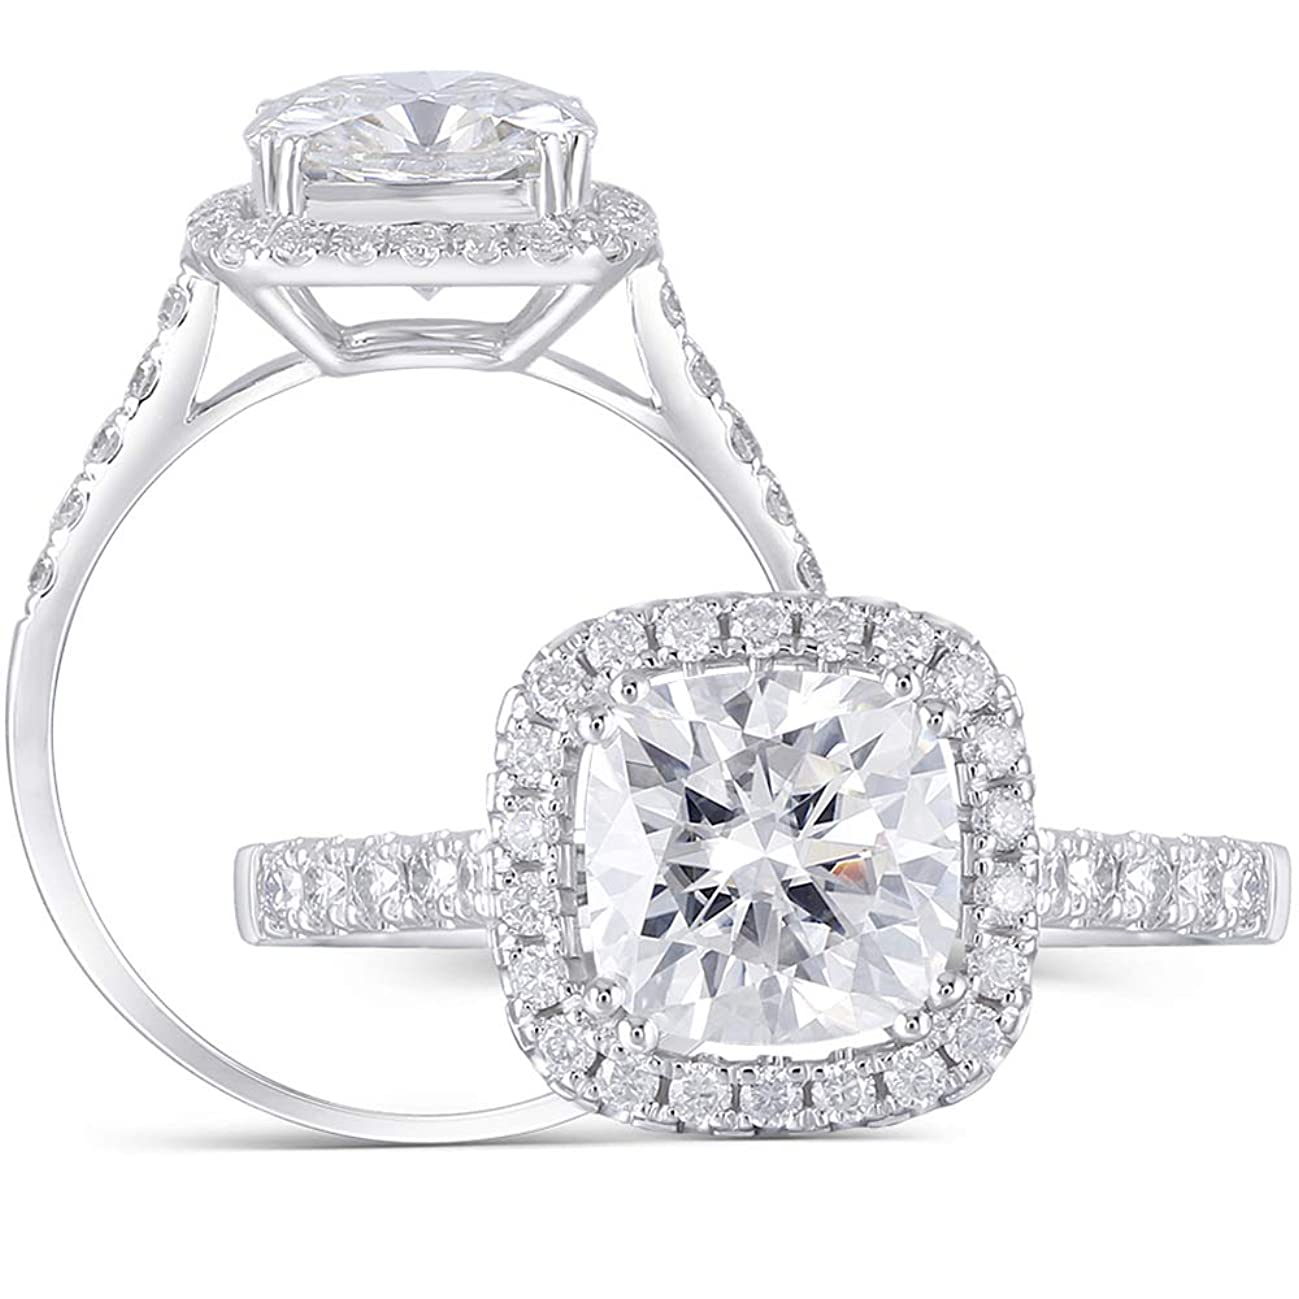 DovEggs Solid 14K White Gold Center 2ct 7.5mm H Color Cushion Cut Created Moissanite Halo Engagement Ring with Accents